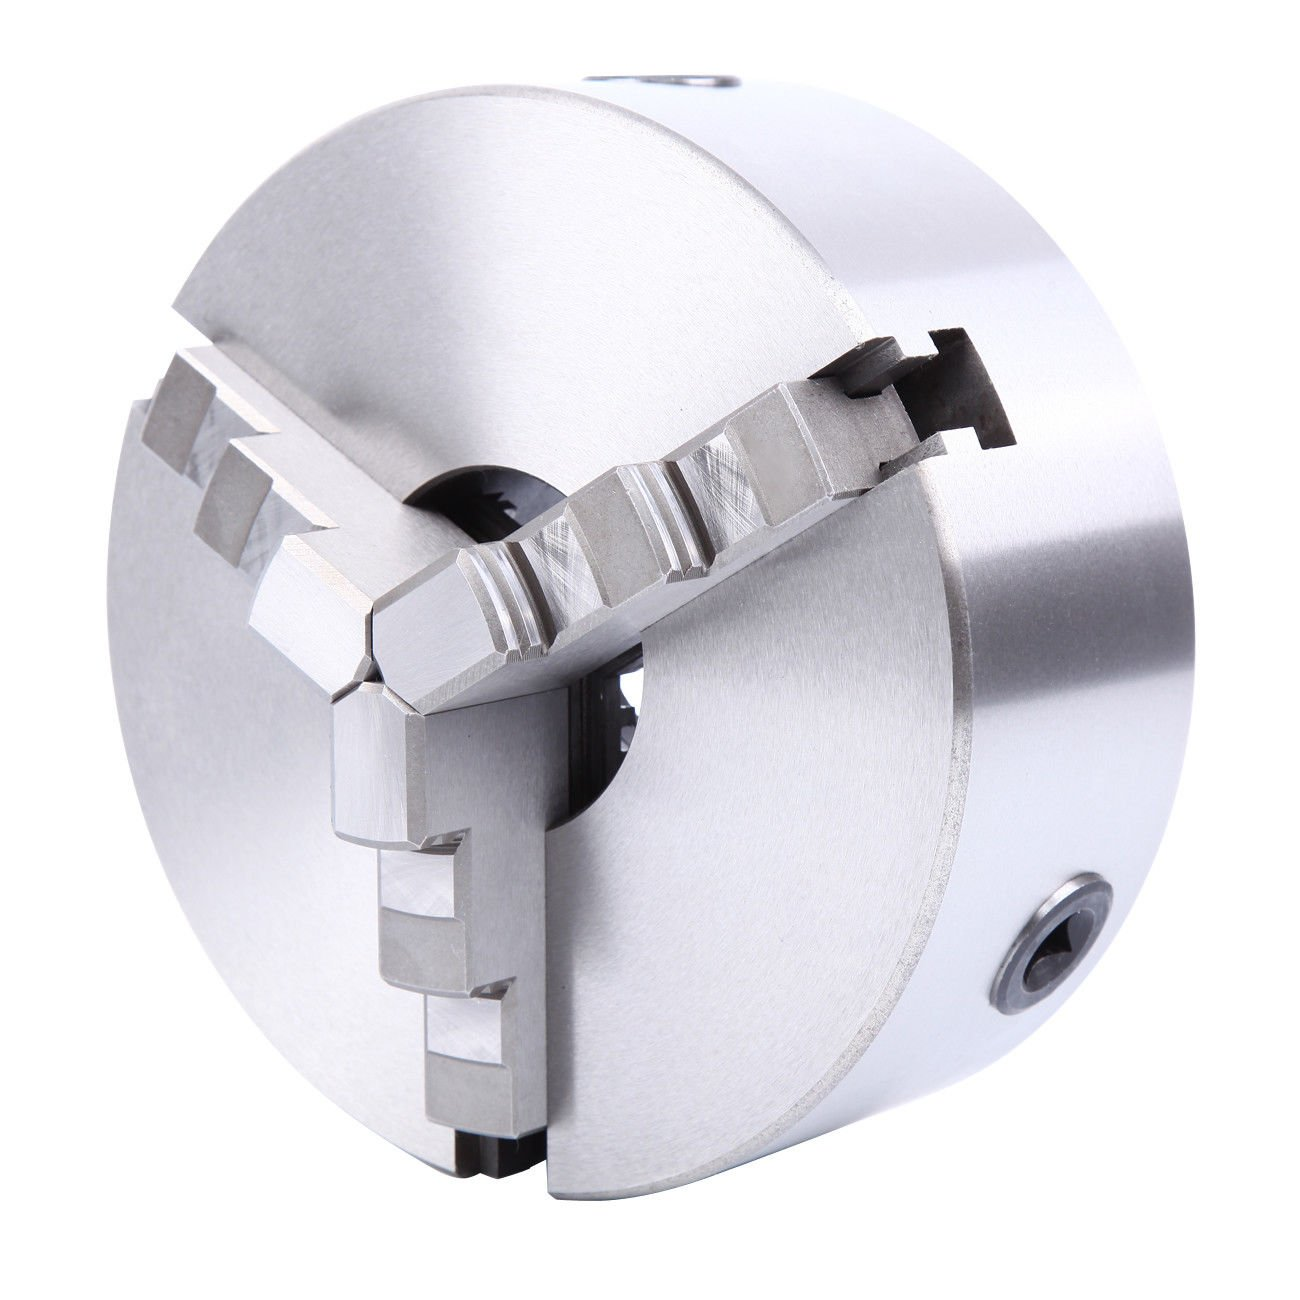 Yonntech 8 3-Jaw Precision Self-Centering Lathe Chuck 8 Inch 3 Jaw High-accuracy Lathe Fixture Self Centering Chuck for Lathe with 2 sets Jaw